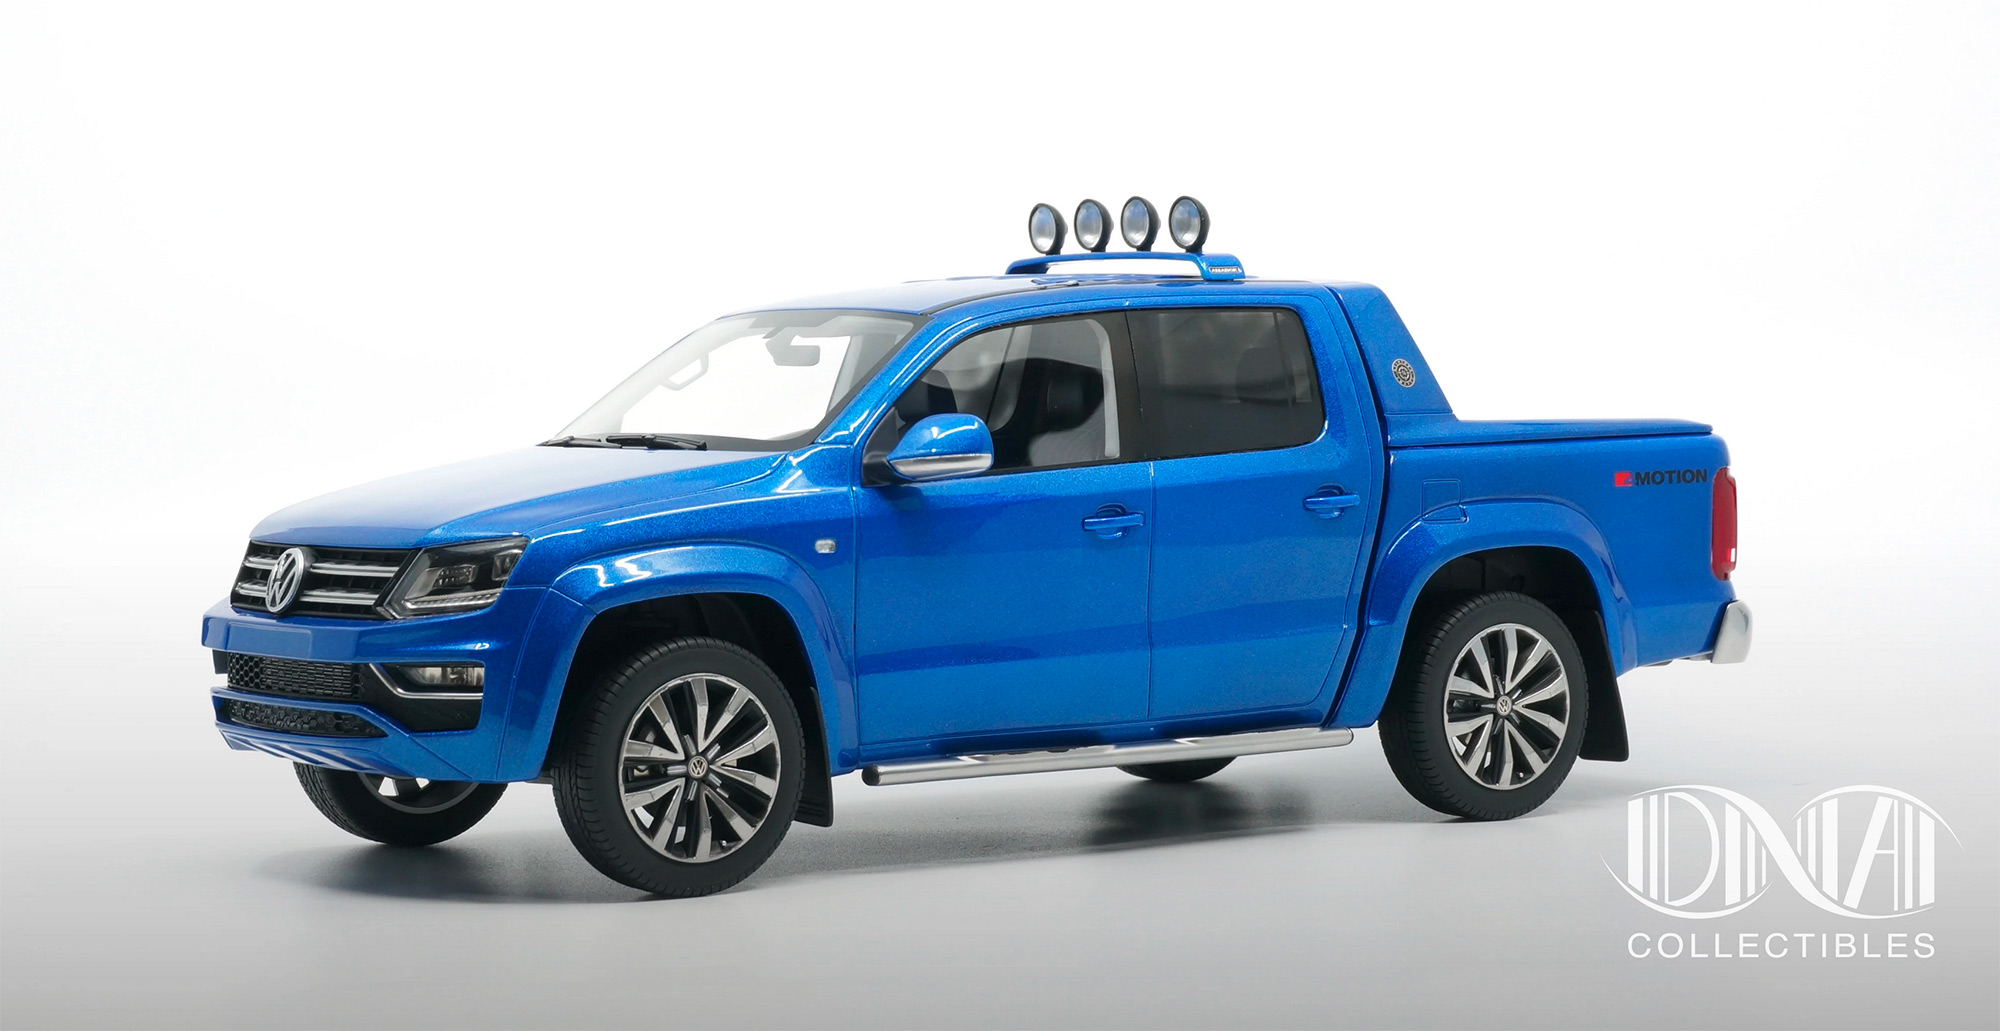 Volkswagen Amarok DNA Collectibles DNA000047